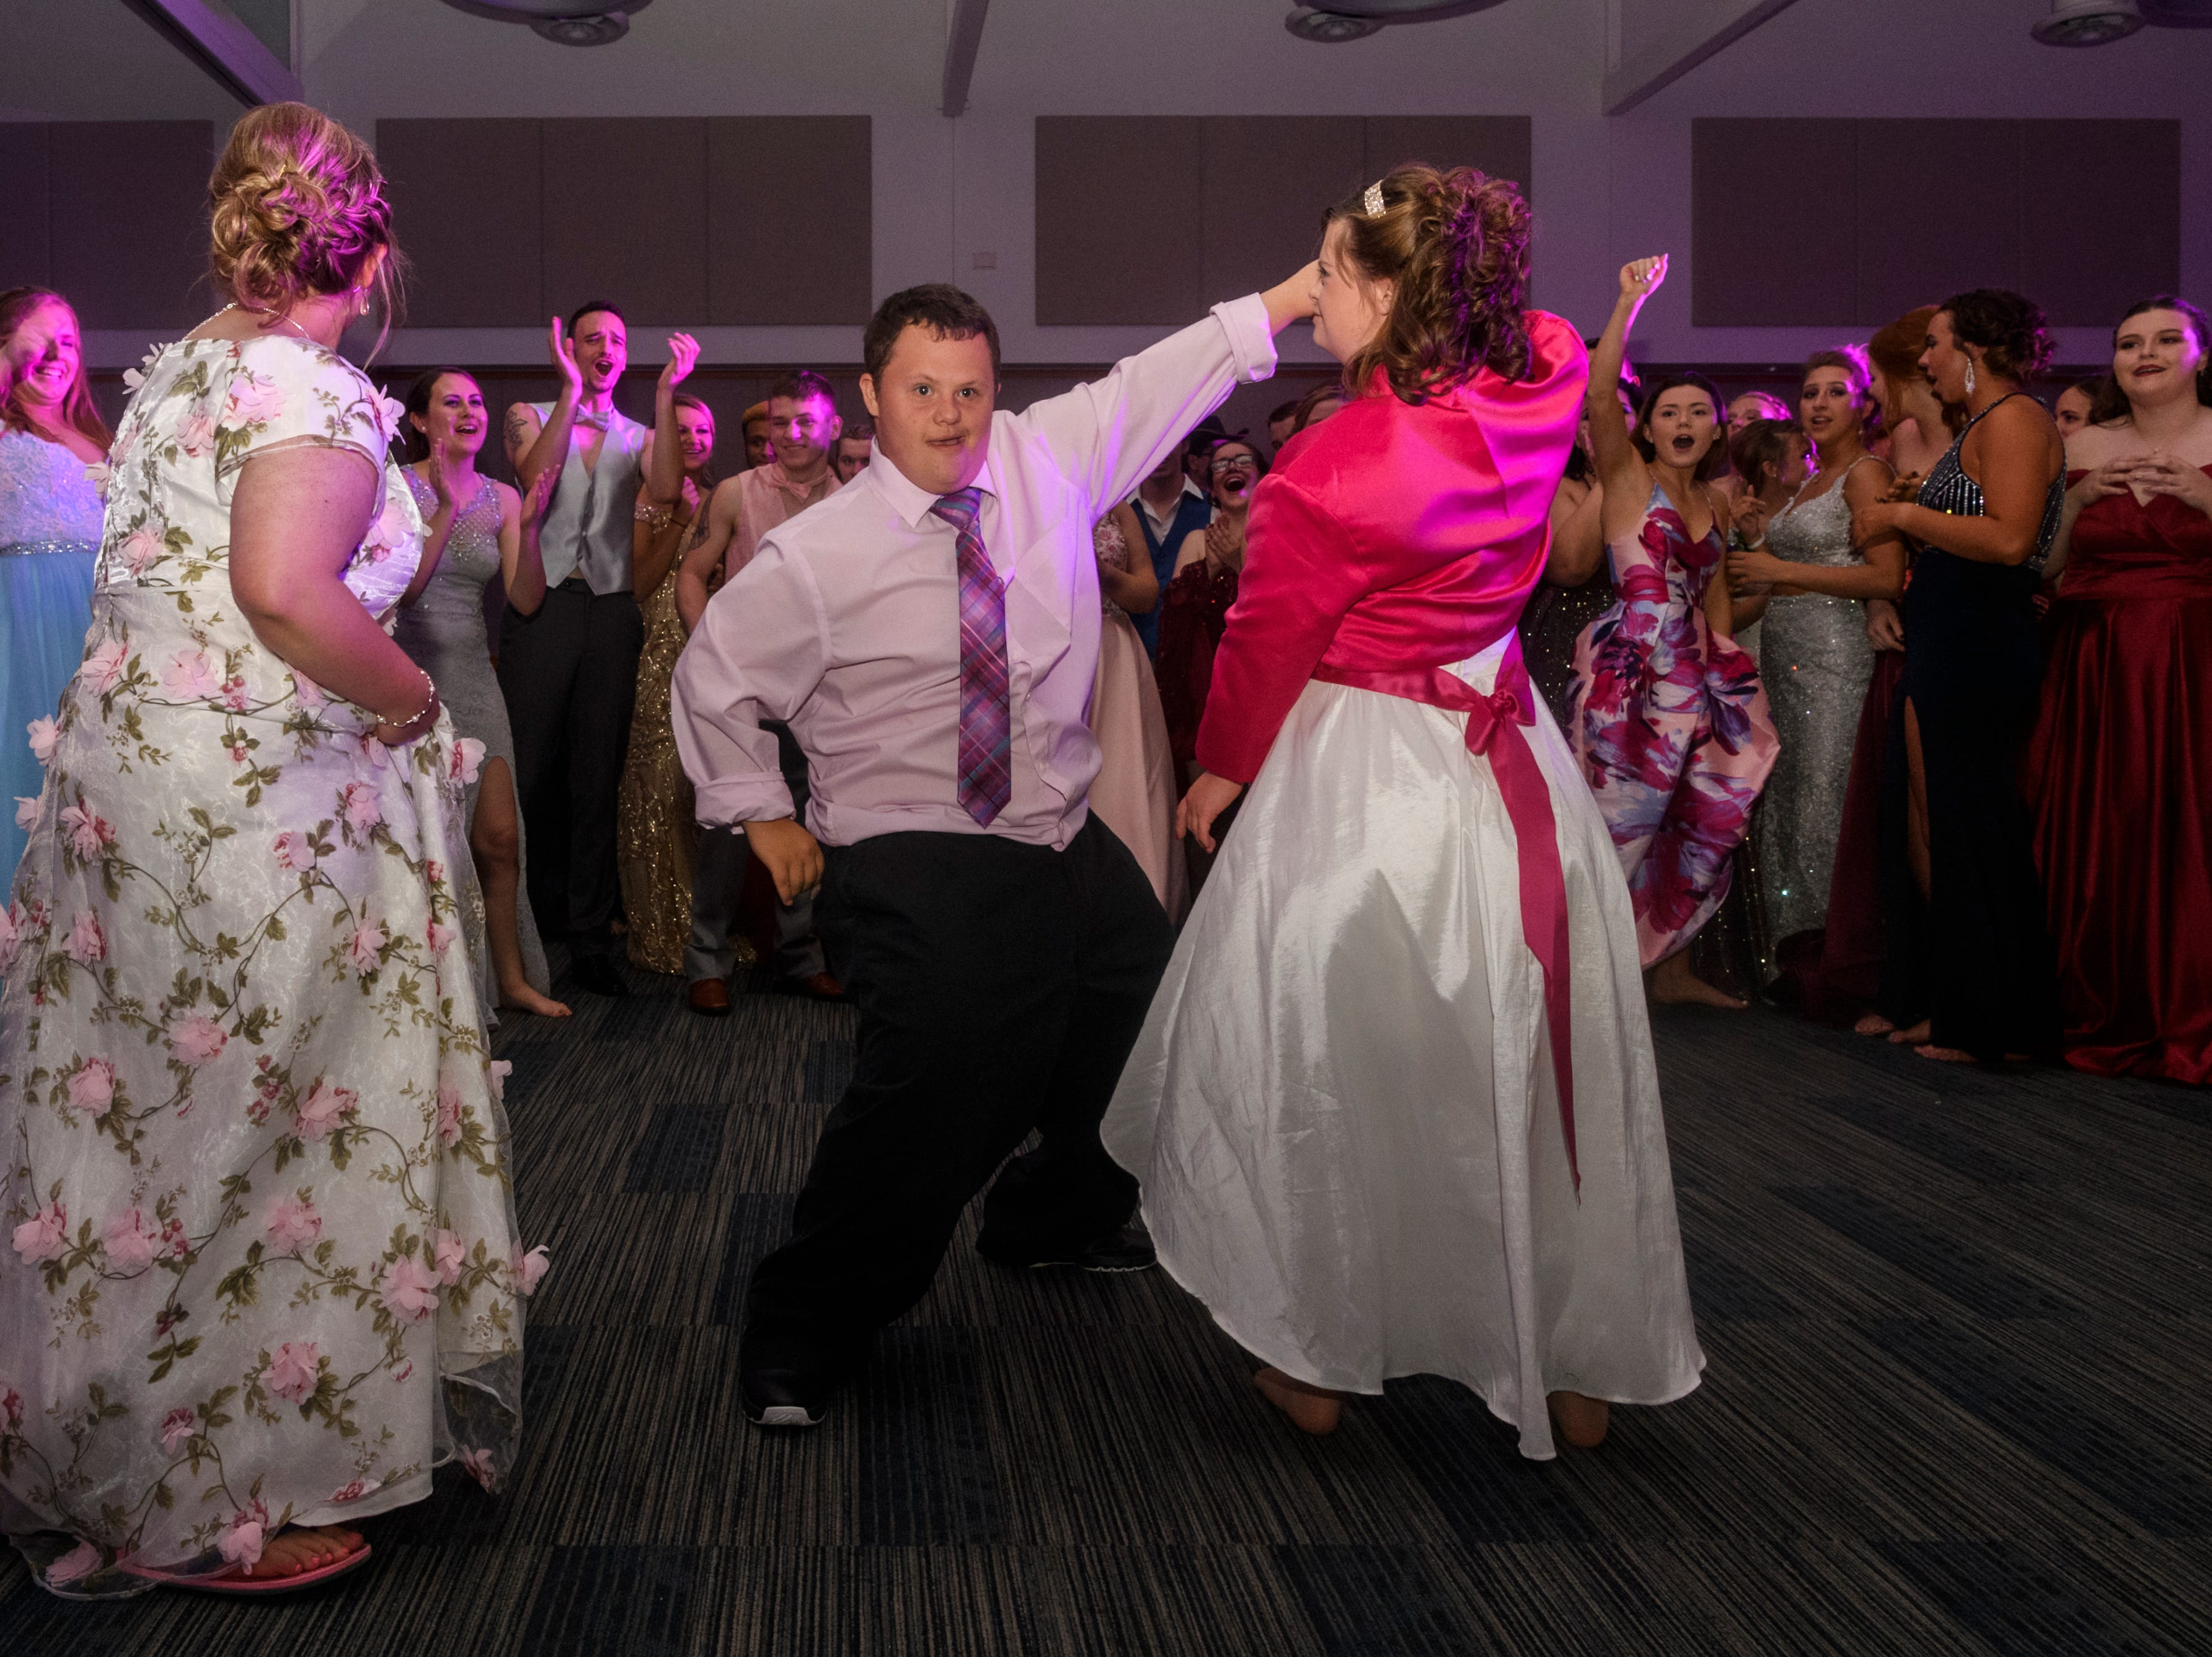 Kylee Ricketts, left to right, Ethan Sutton and Rebekah Granderson dance together during Mt. Vernon's prom held inside the University of Southern Indiana's Carter Hall in Evansville, Ind., Saturday, May 4, 2019.